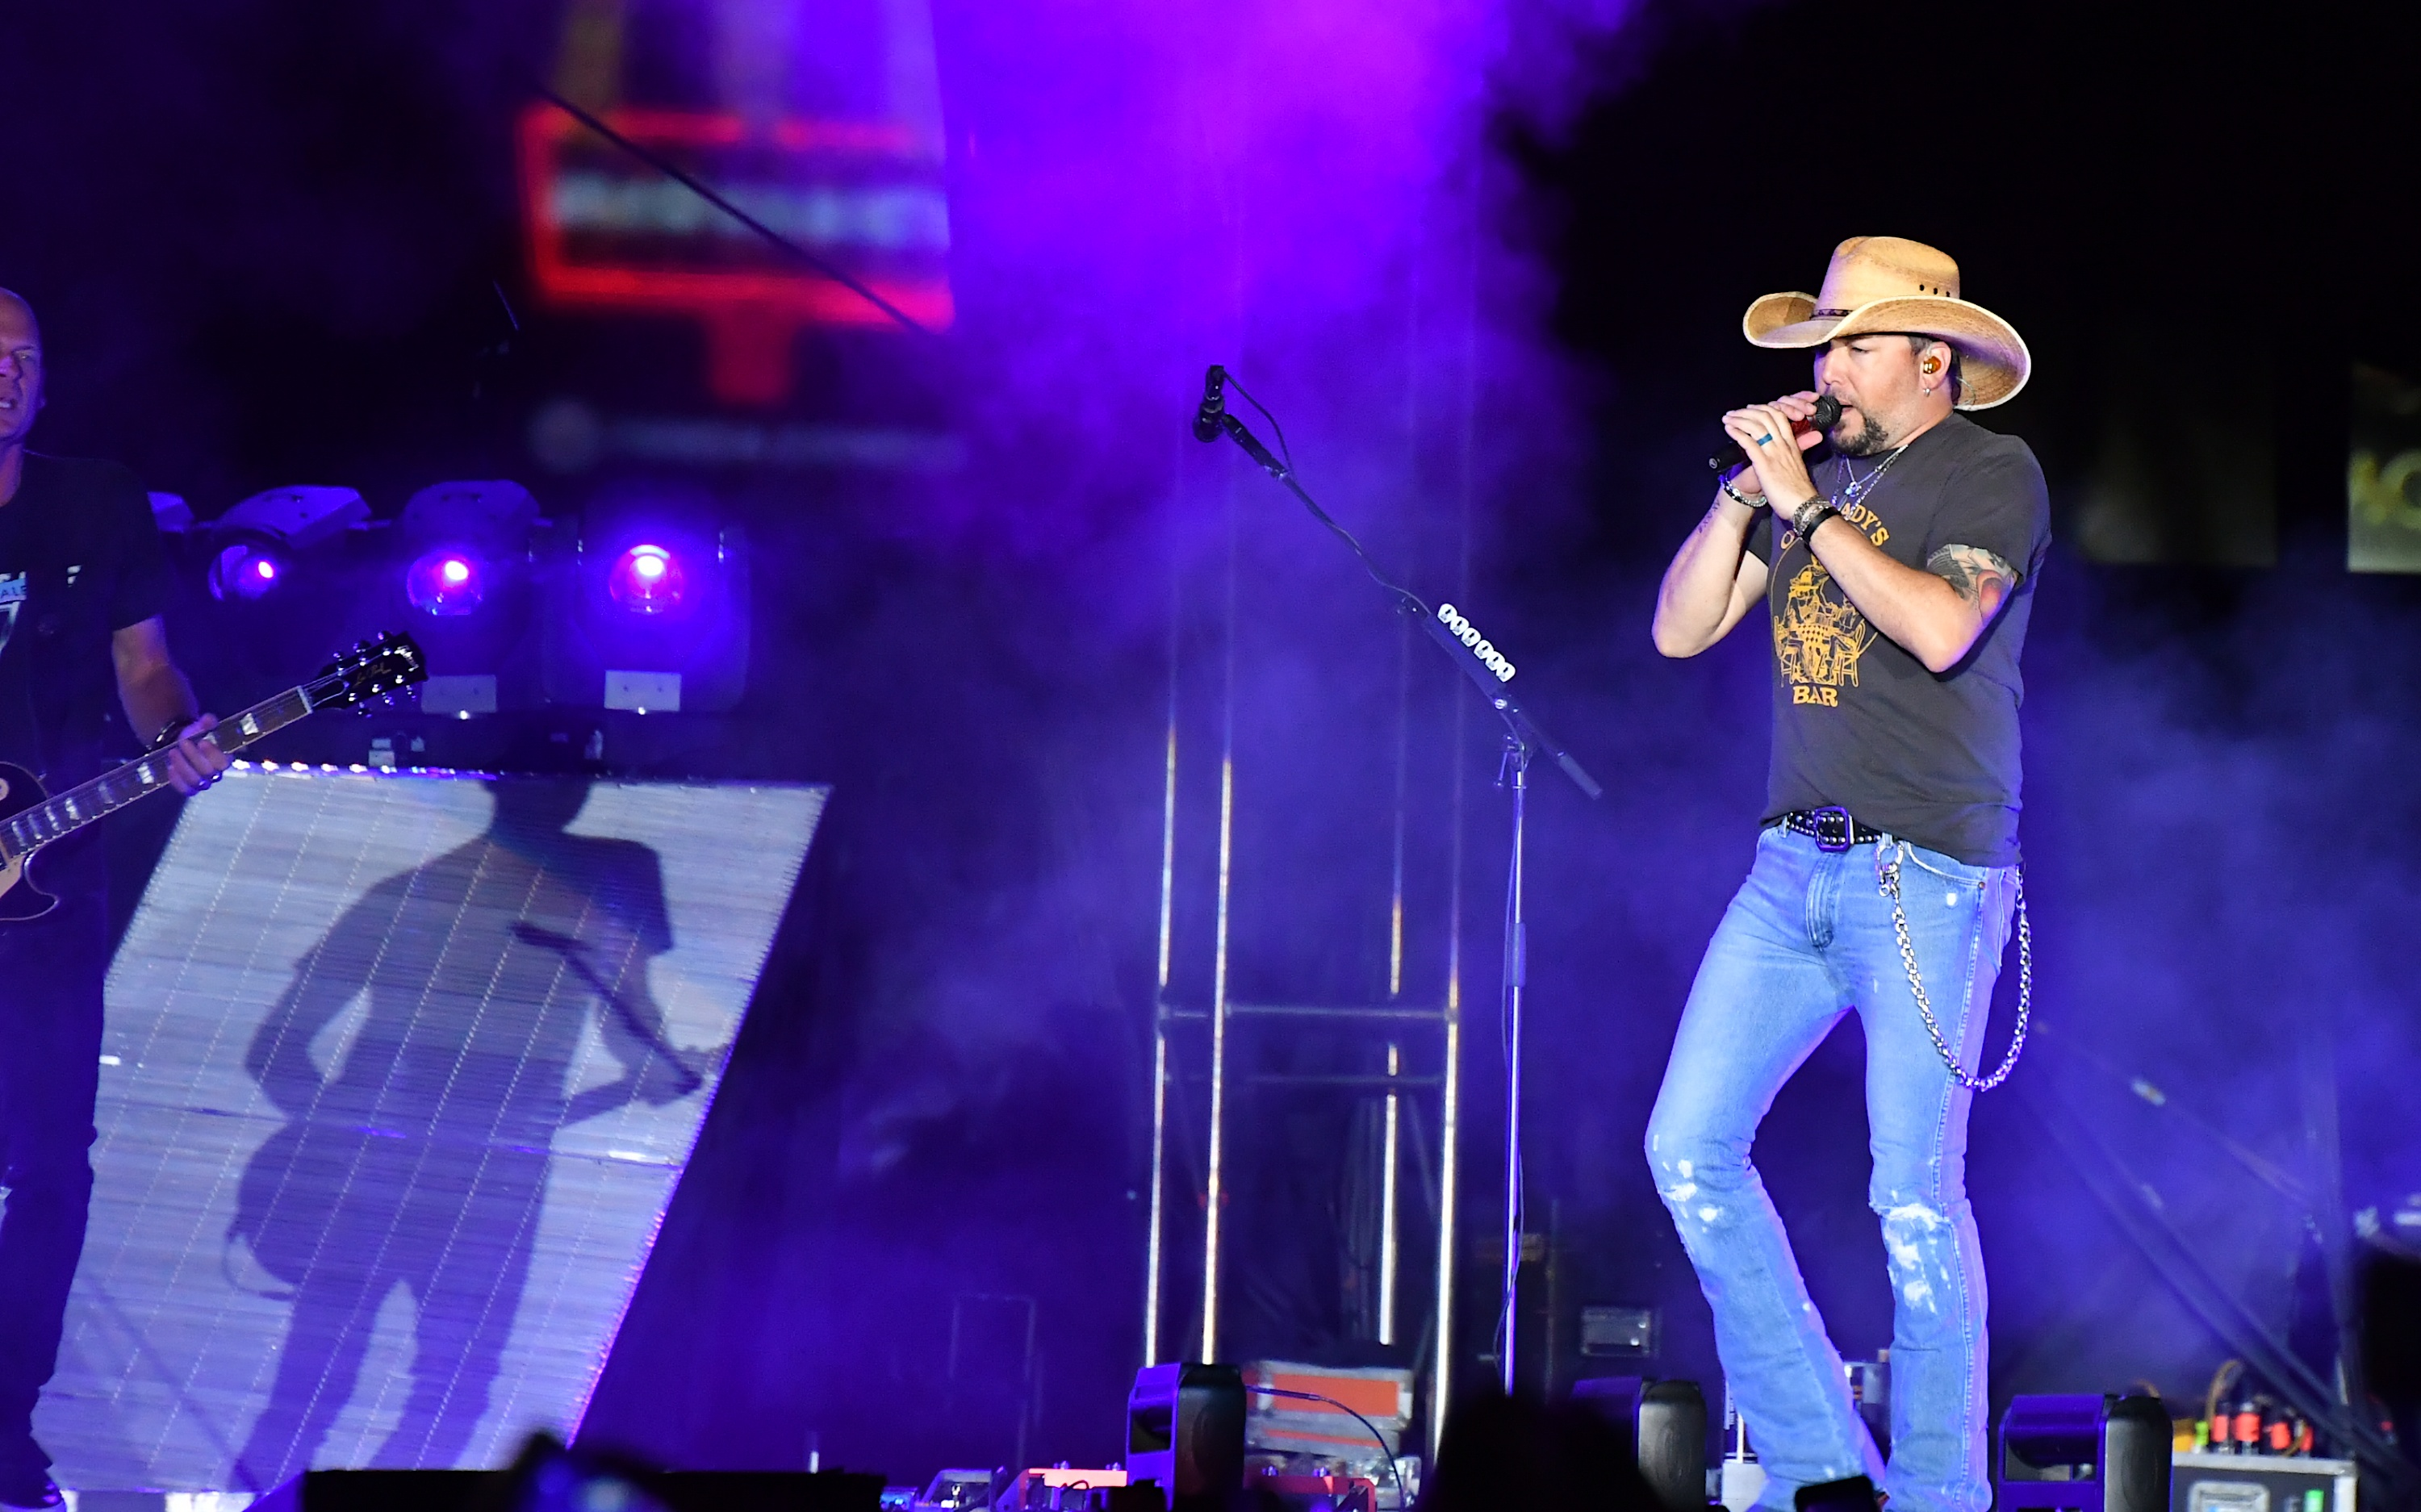 Recording artist Jason Aldean performs during the Route 91 Harvest country music festival at the Las Vegas Village on Oct. 1, 2017 in Las Vegas, Nevada.